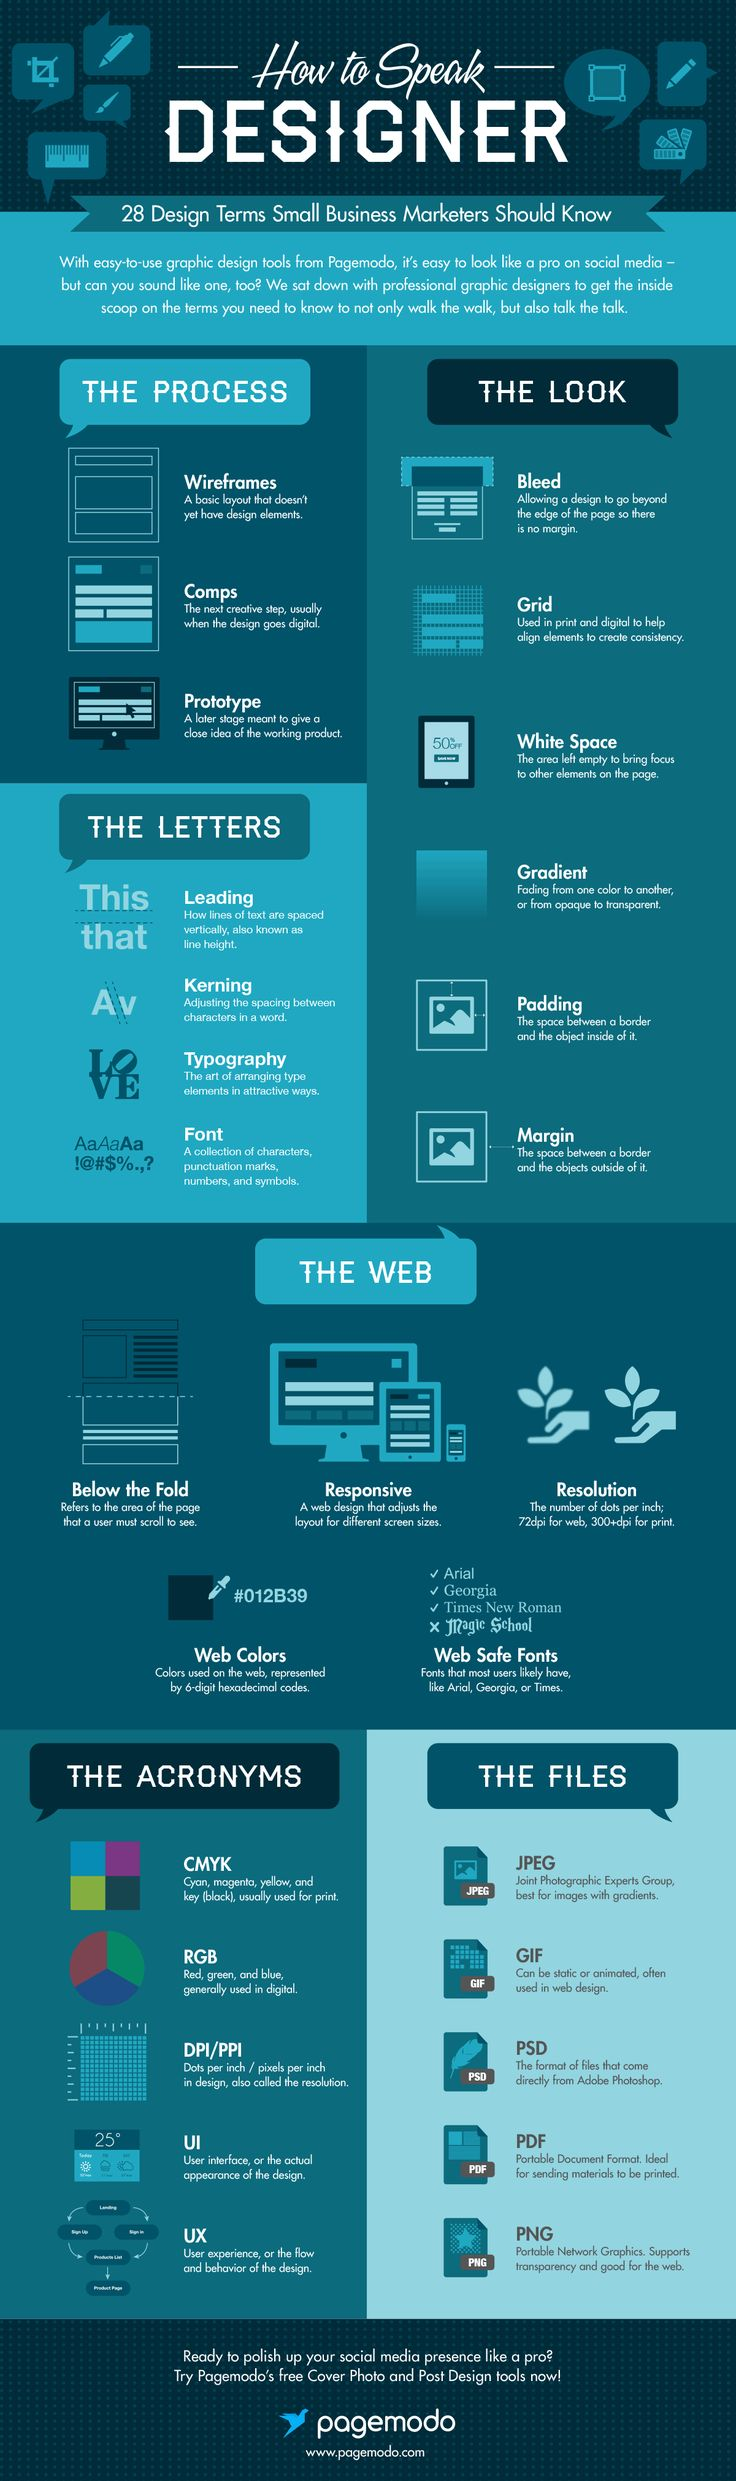 cheat sheet graphic design words everyone should know infographic - Graphic Design Business Ideas